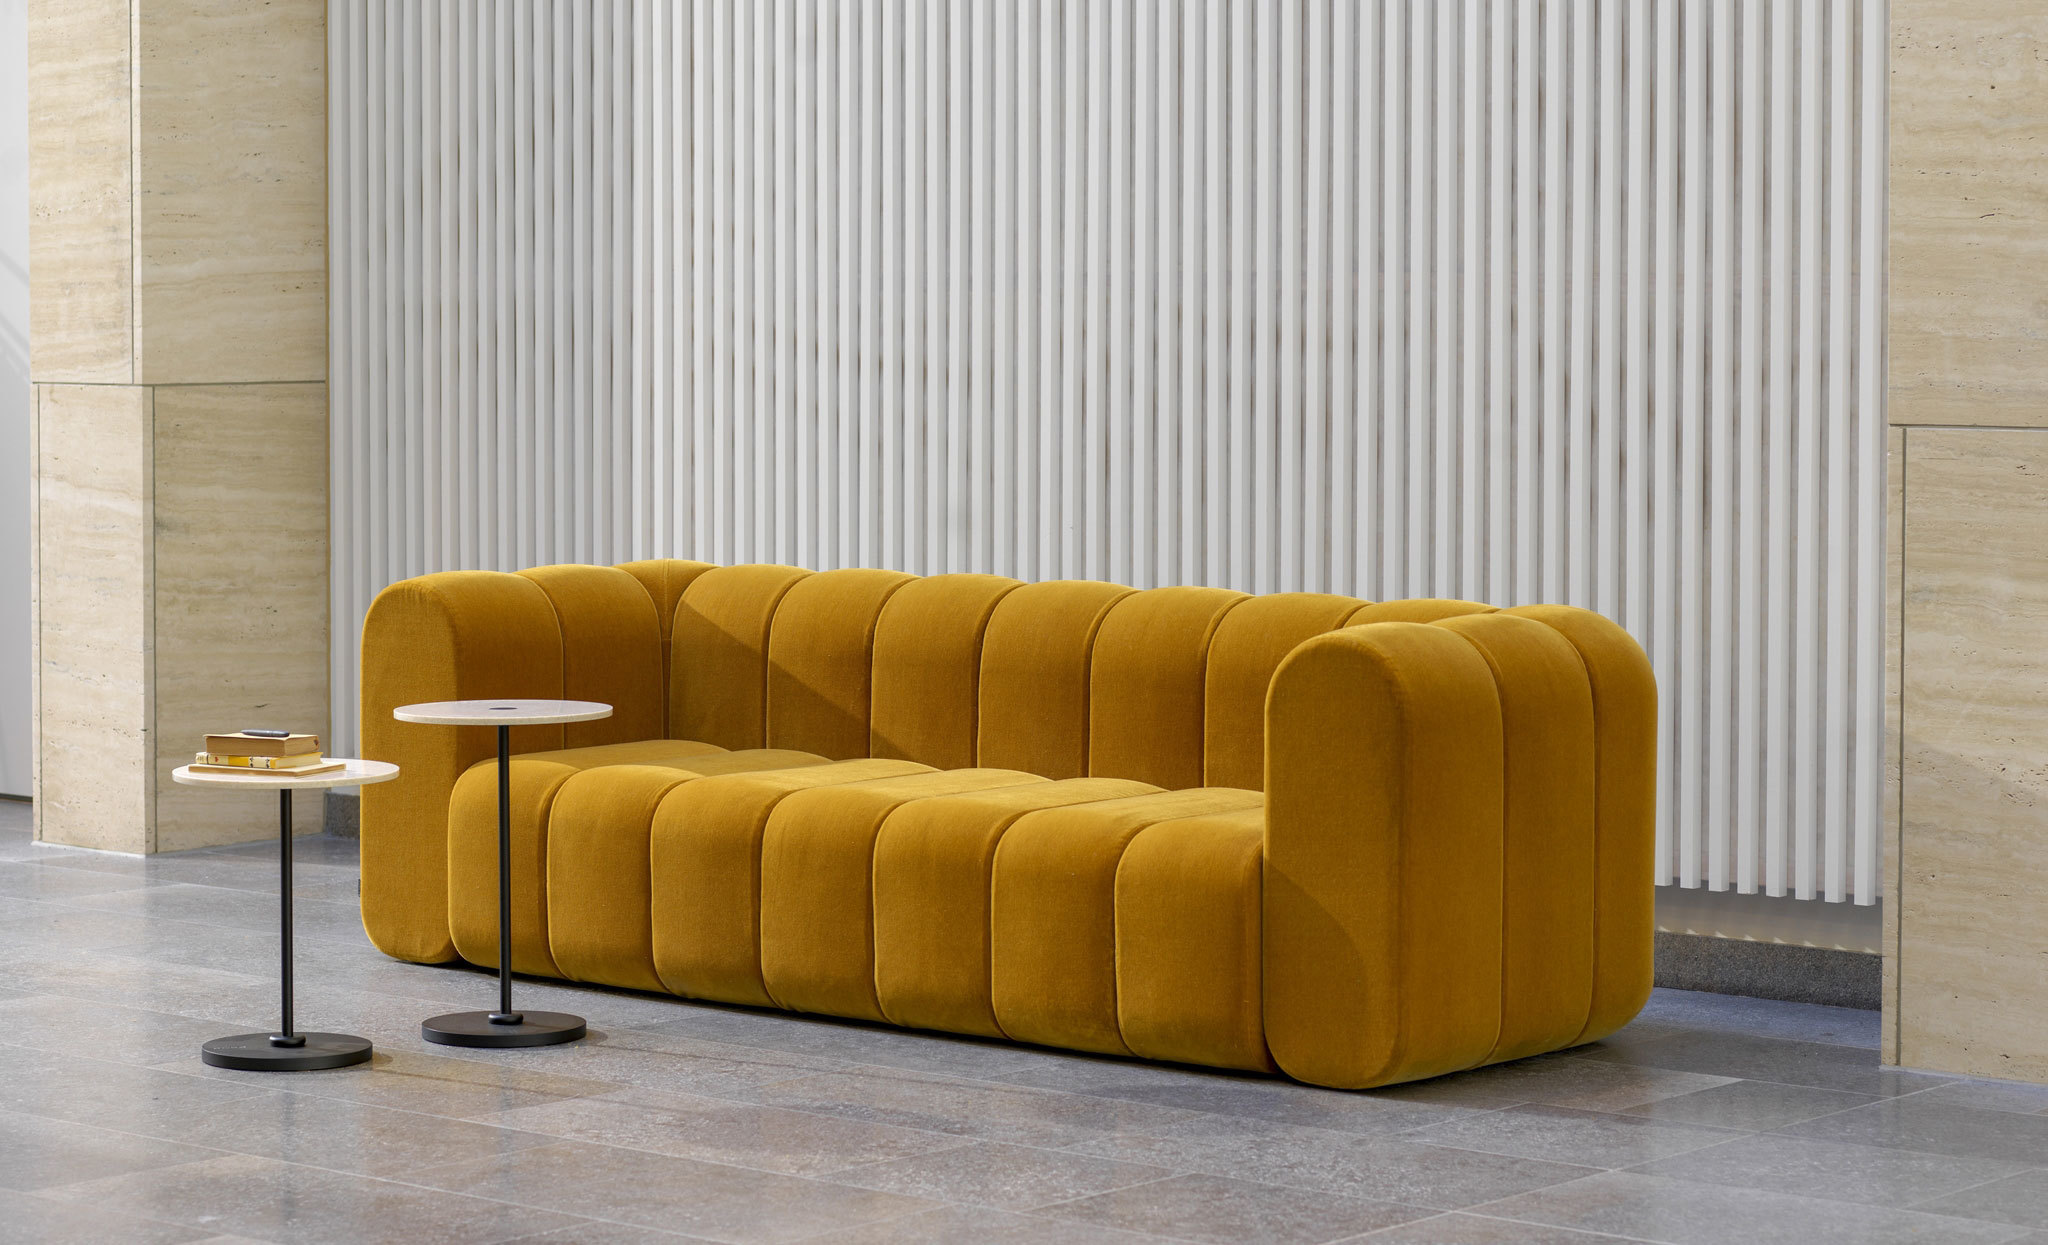 BOB Sofa (Yellow)